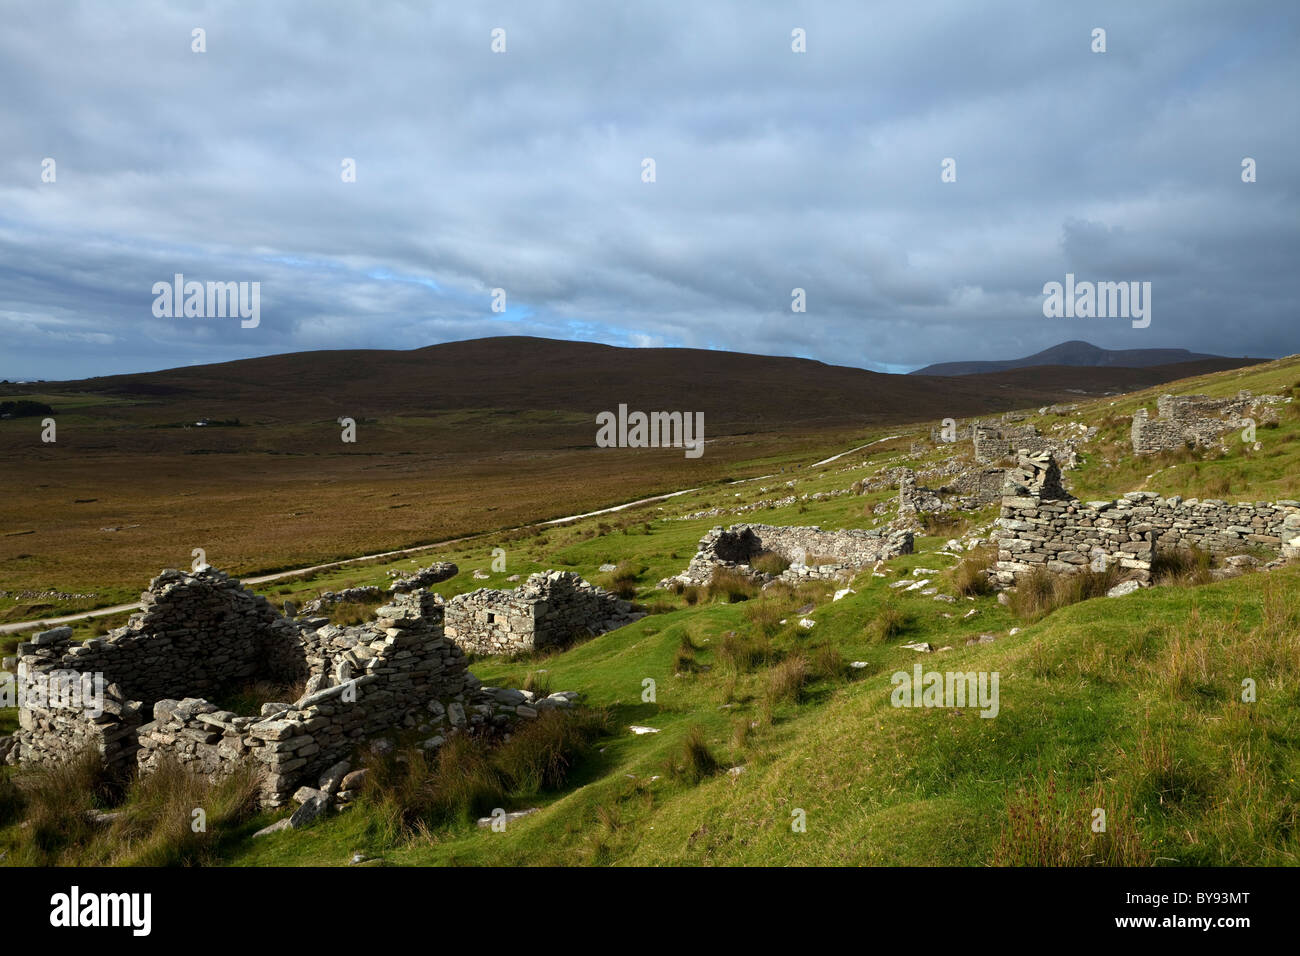 The Missionary Settlement - or Deserted Village, On the slopes of Slievemore, Achill Island, County Mayo, Ireland - Stock Image